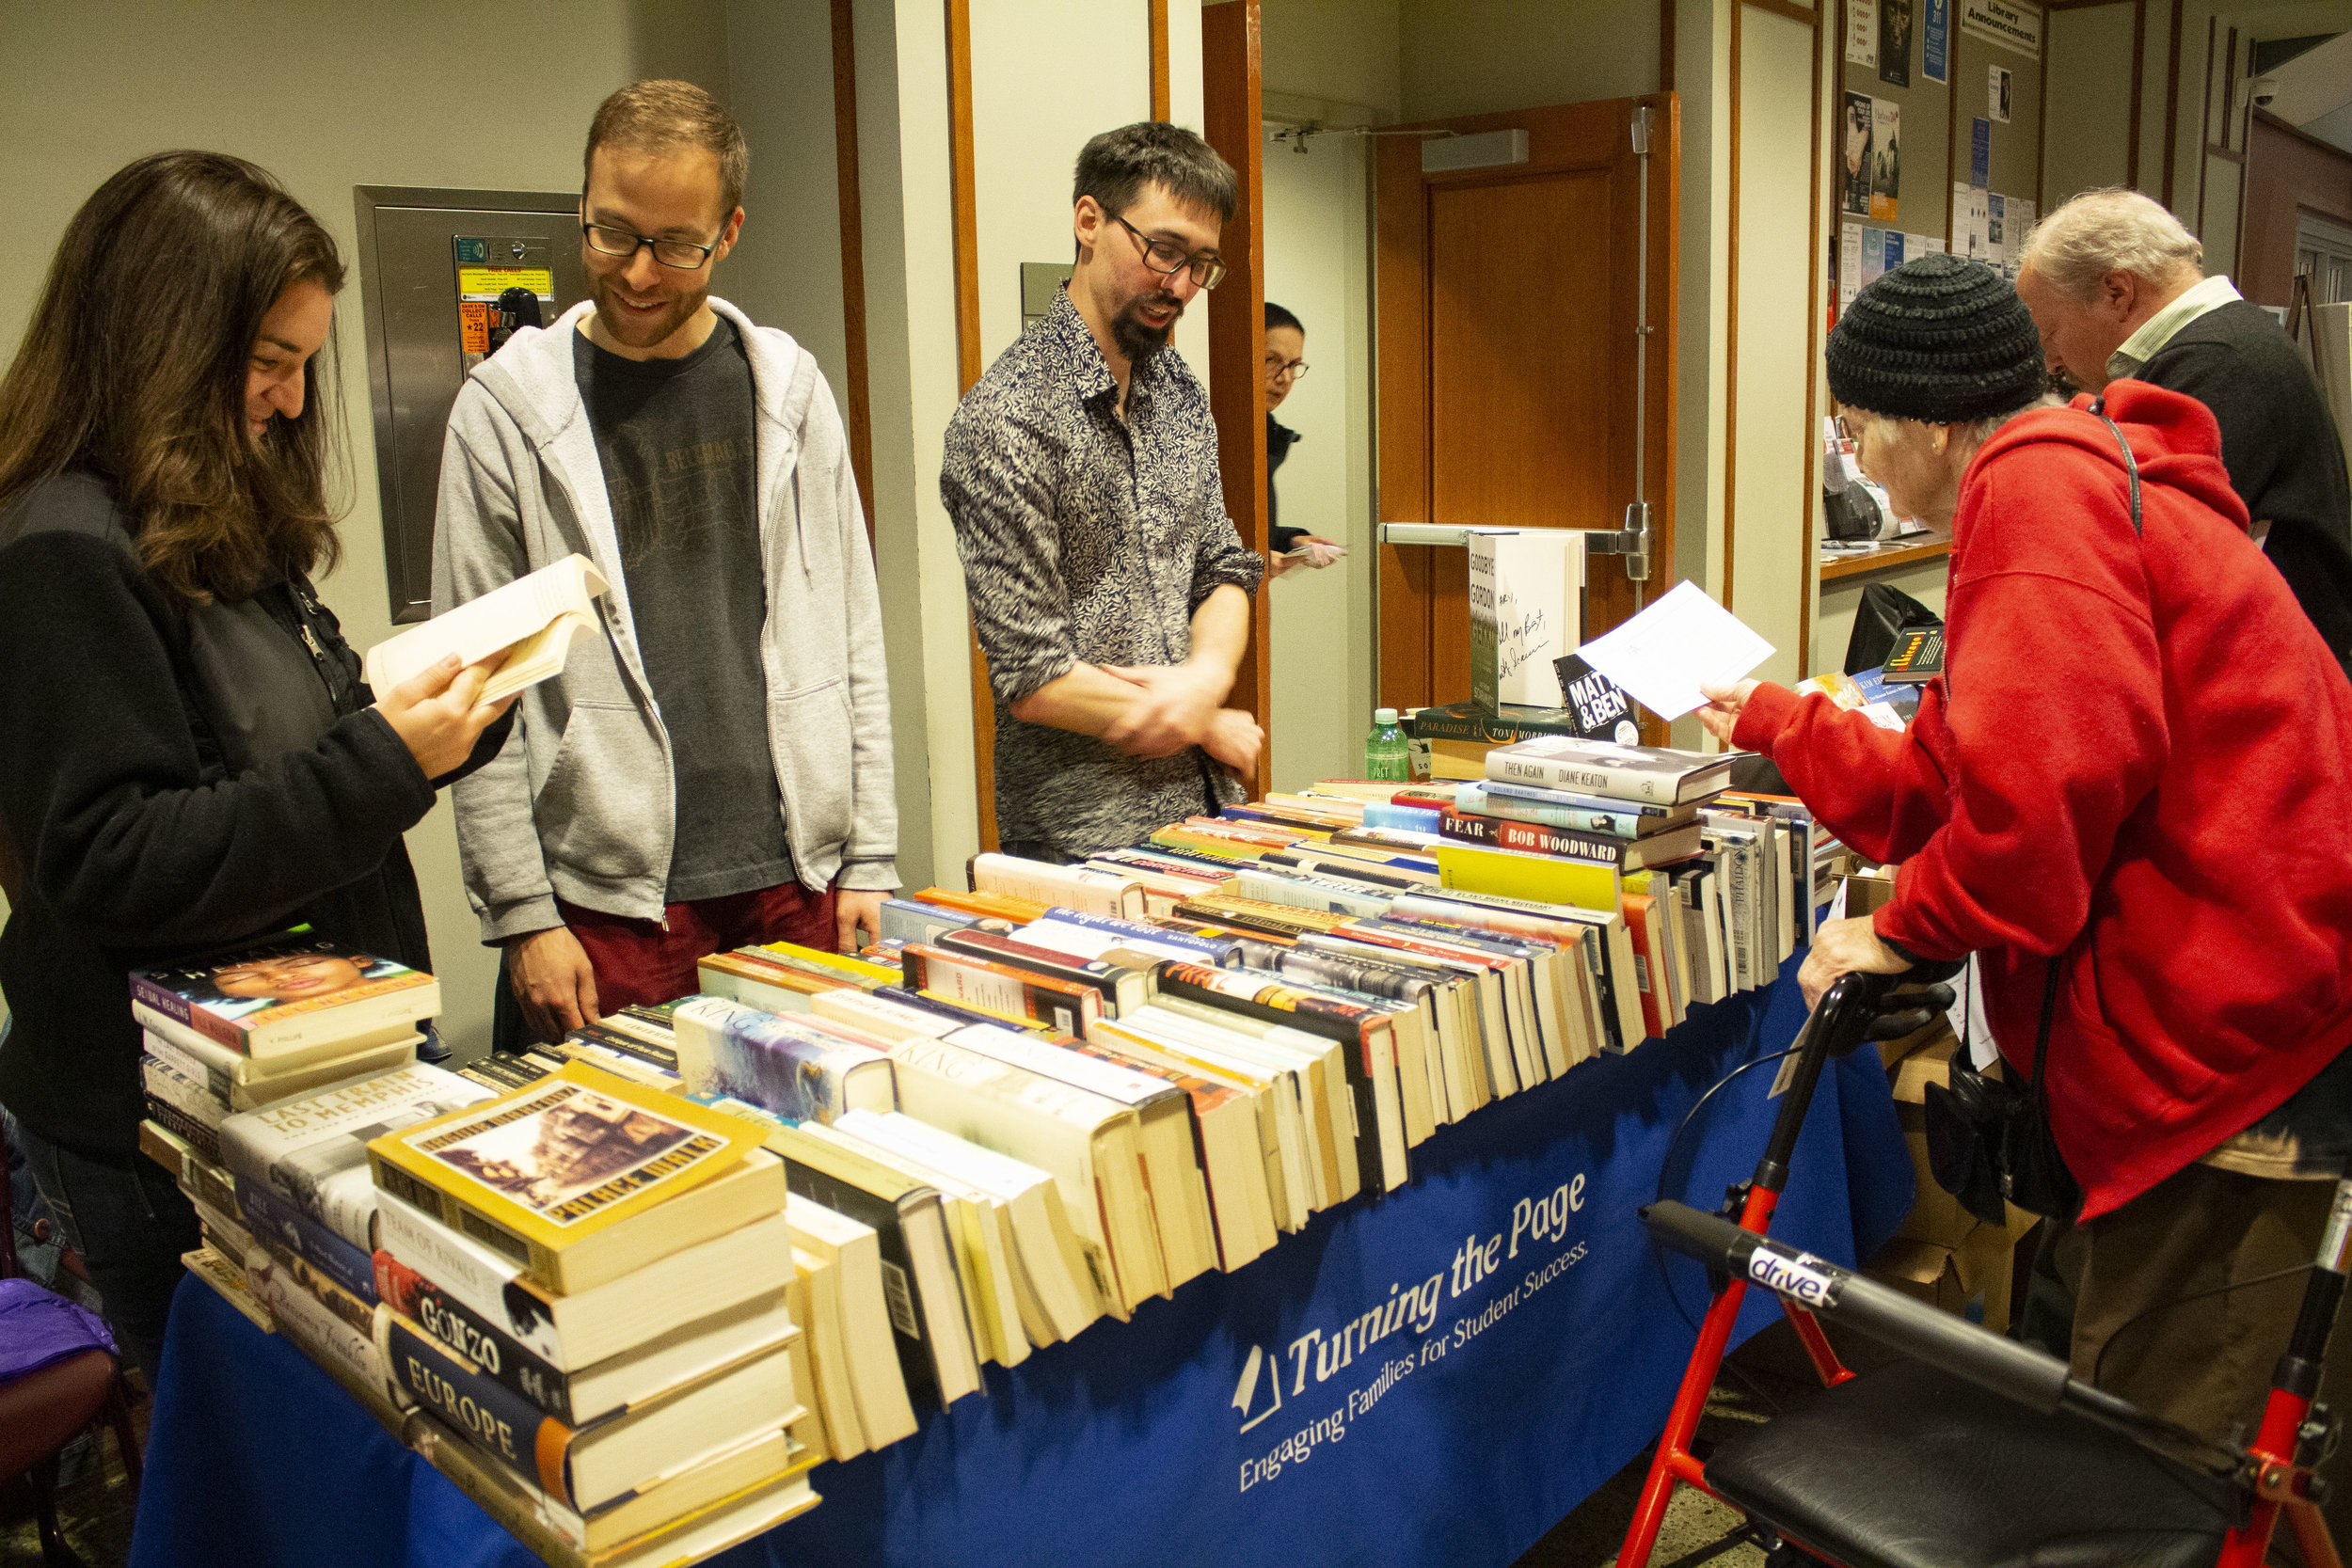 Turning the Page at the Evanston Literary Festival Book Fair.